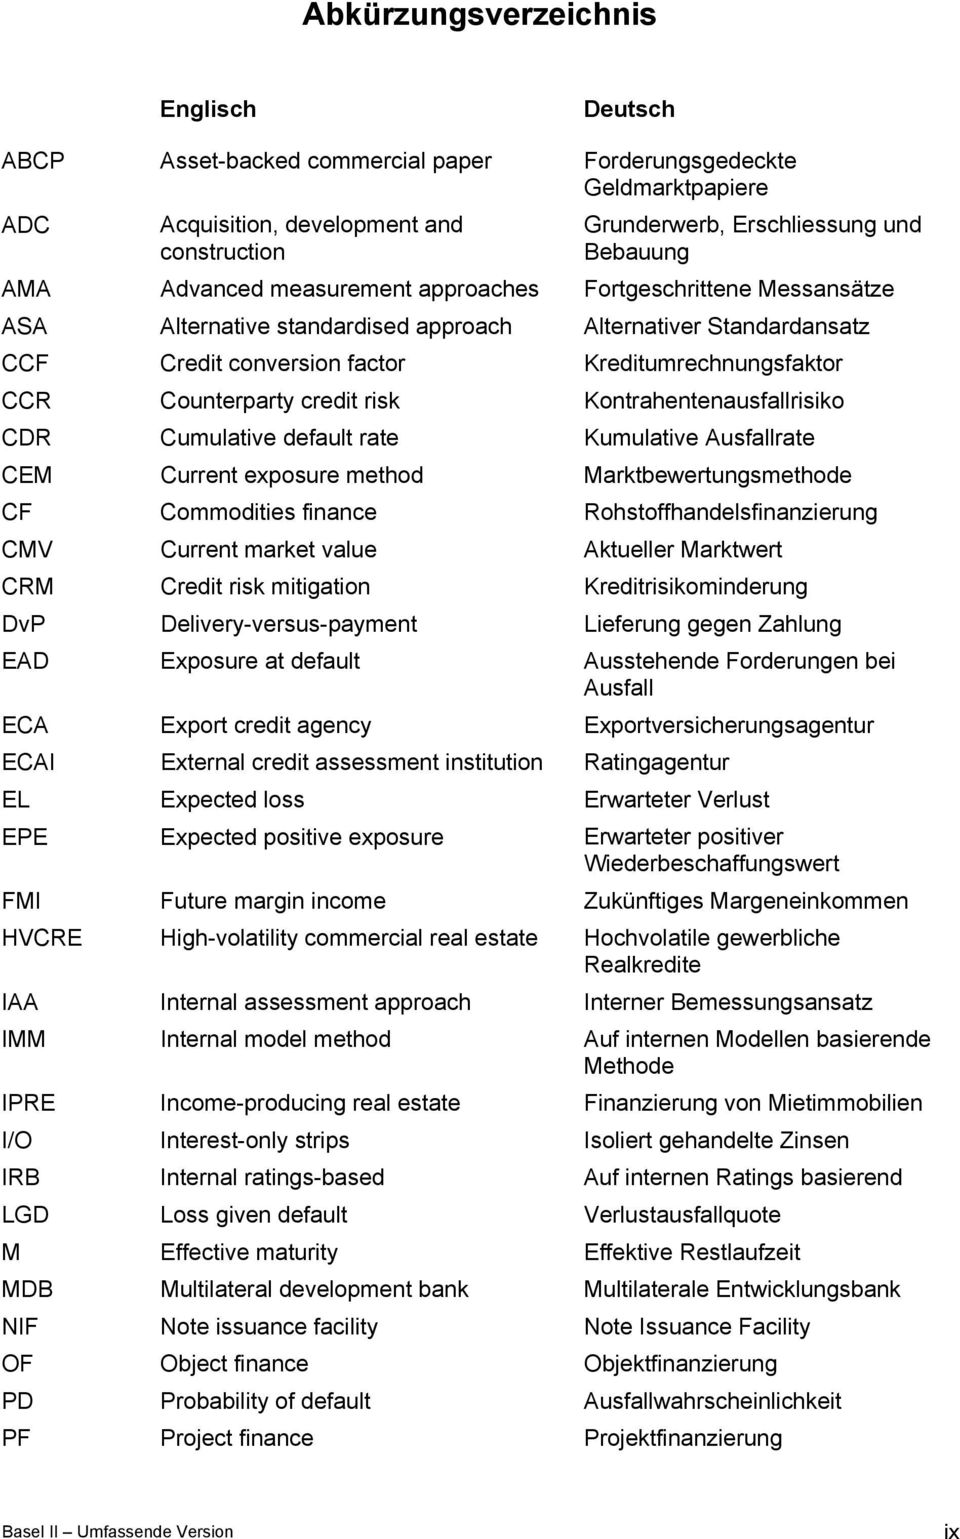 credit risk Kontrahentenausfallrisiko CDR Cumulative default rate Kumulative Ausfallrate CEM Current exposure method Marktbewertungsmethode CF Commodities finance Rohstoffhandelsfinanzierung CMV